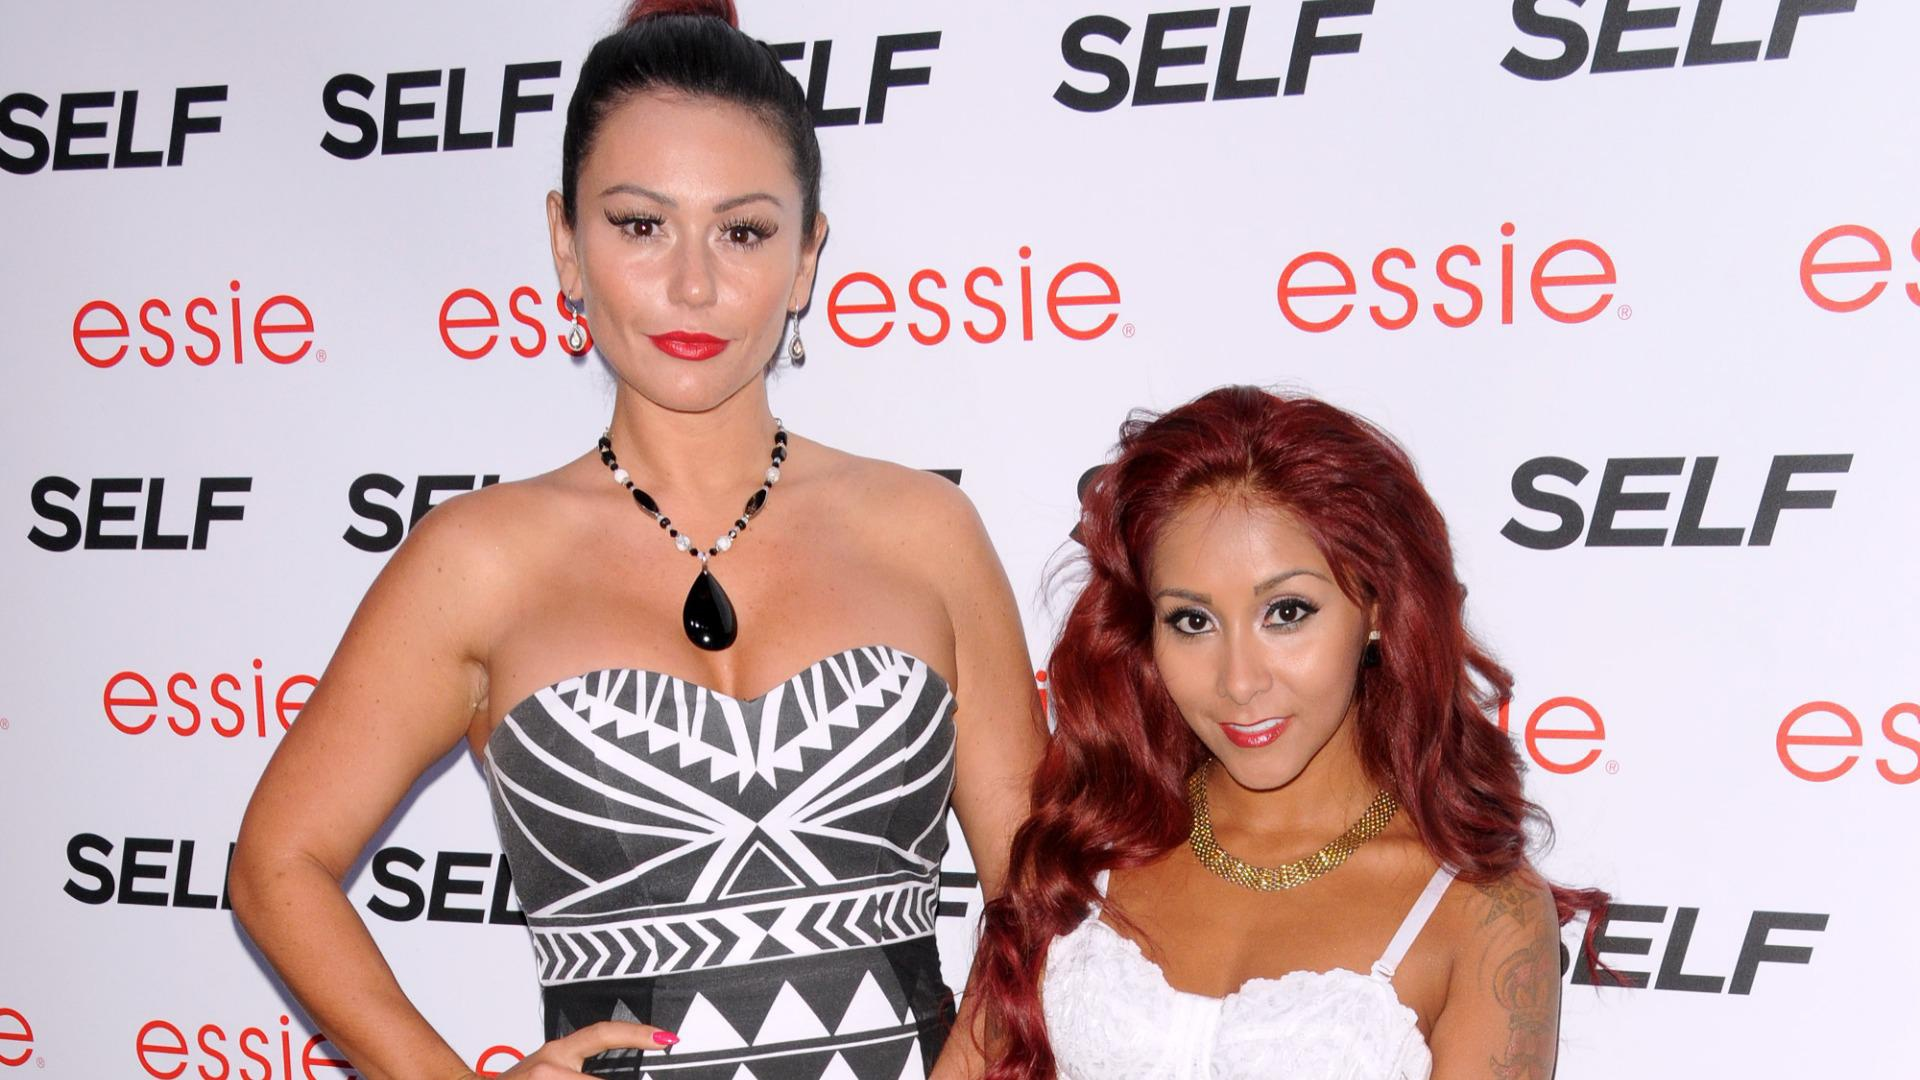 Snooki's son and JWoww's daughter get their first play date